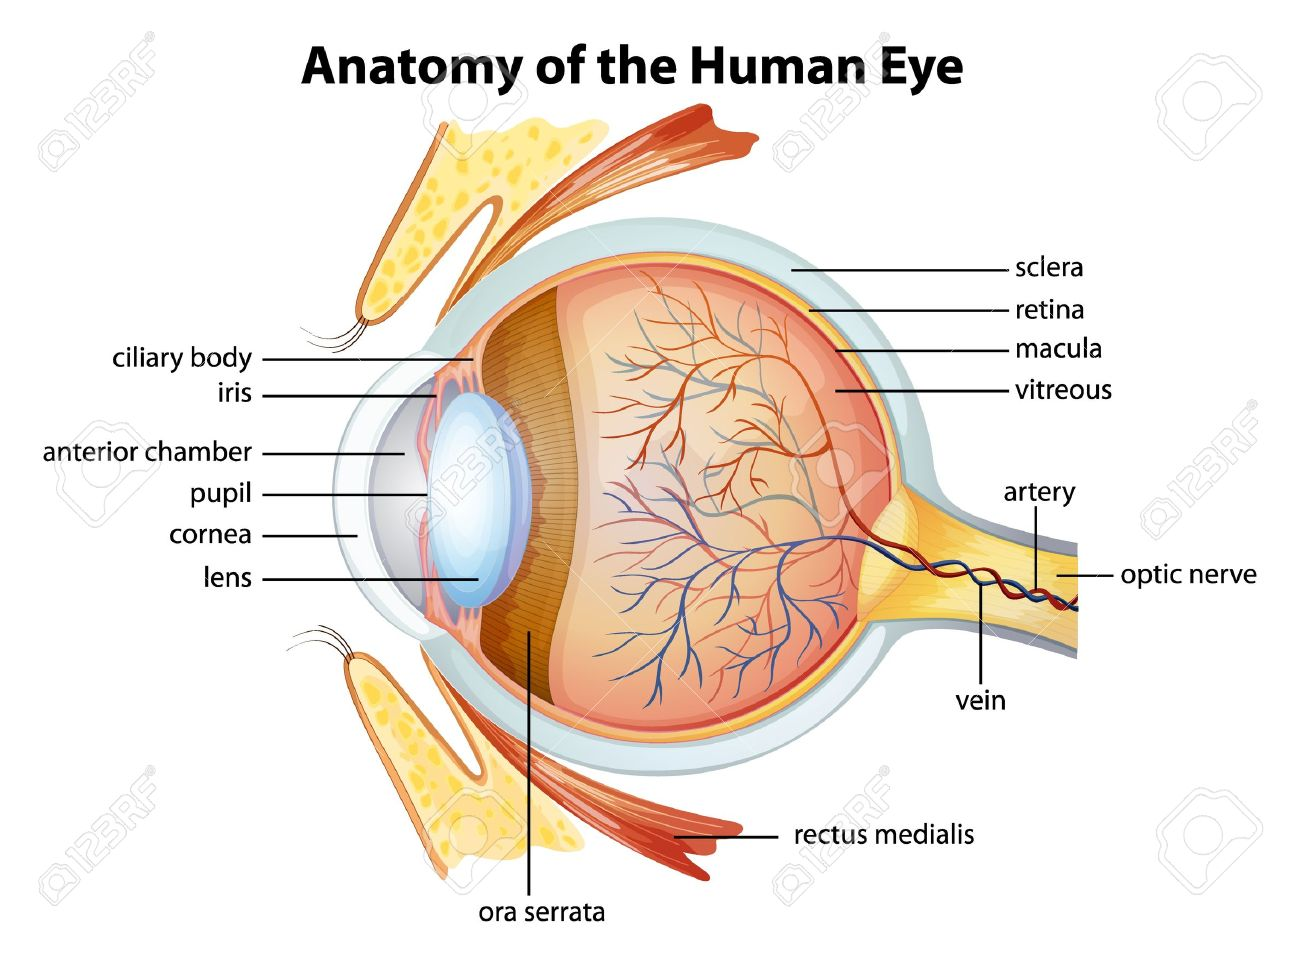 Illustration Of The Human Eye Anatomy Royalty Free Cliparts Vectors